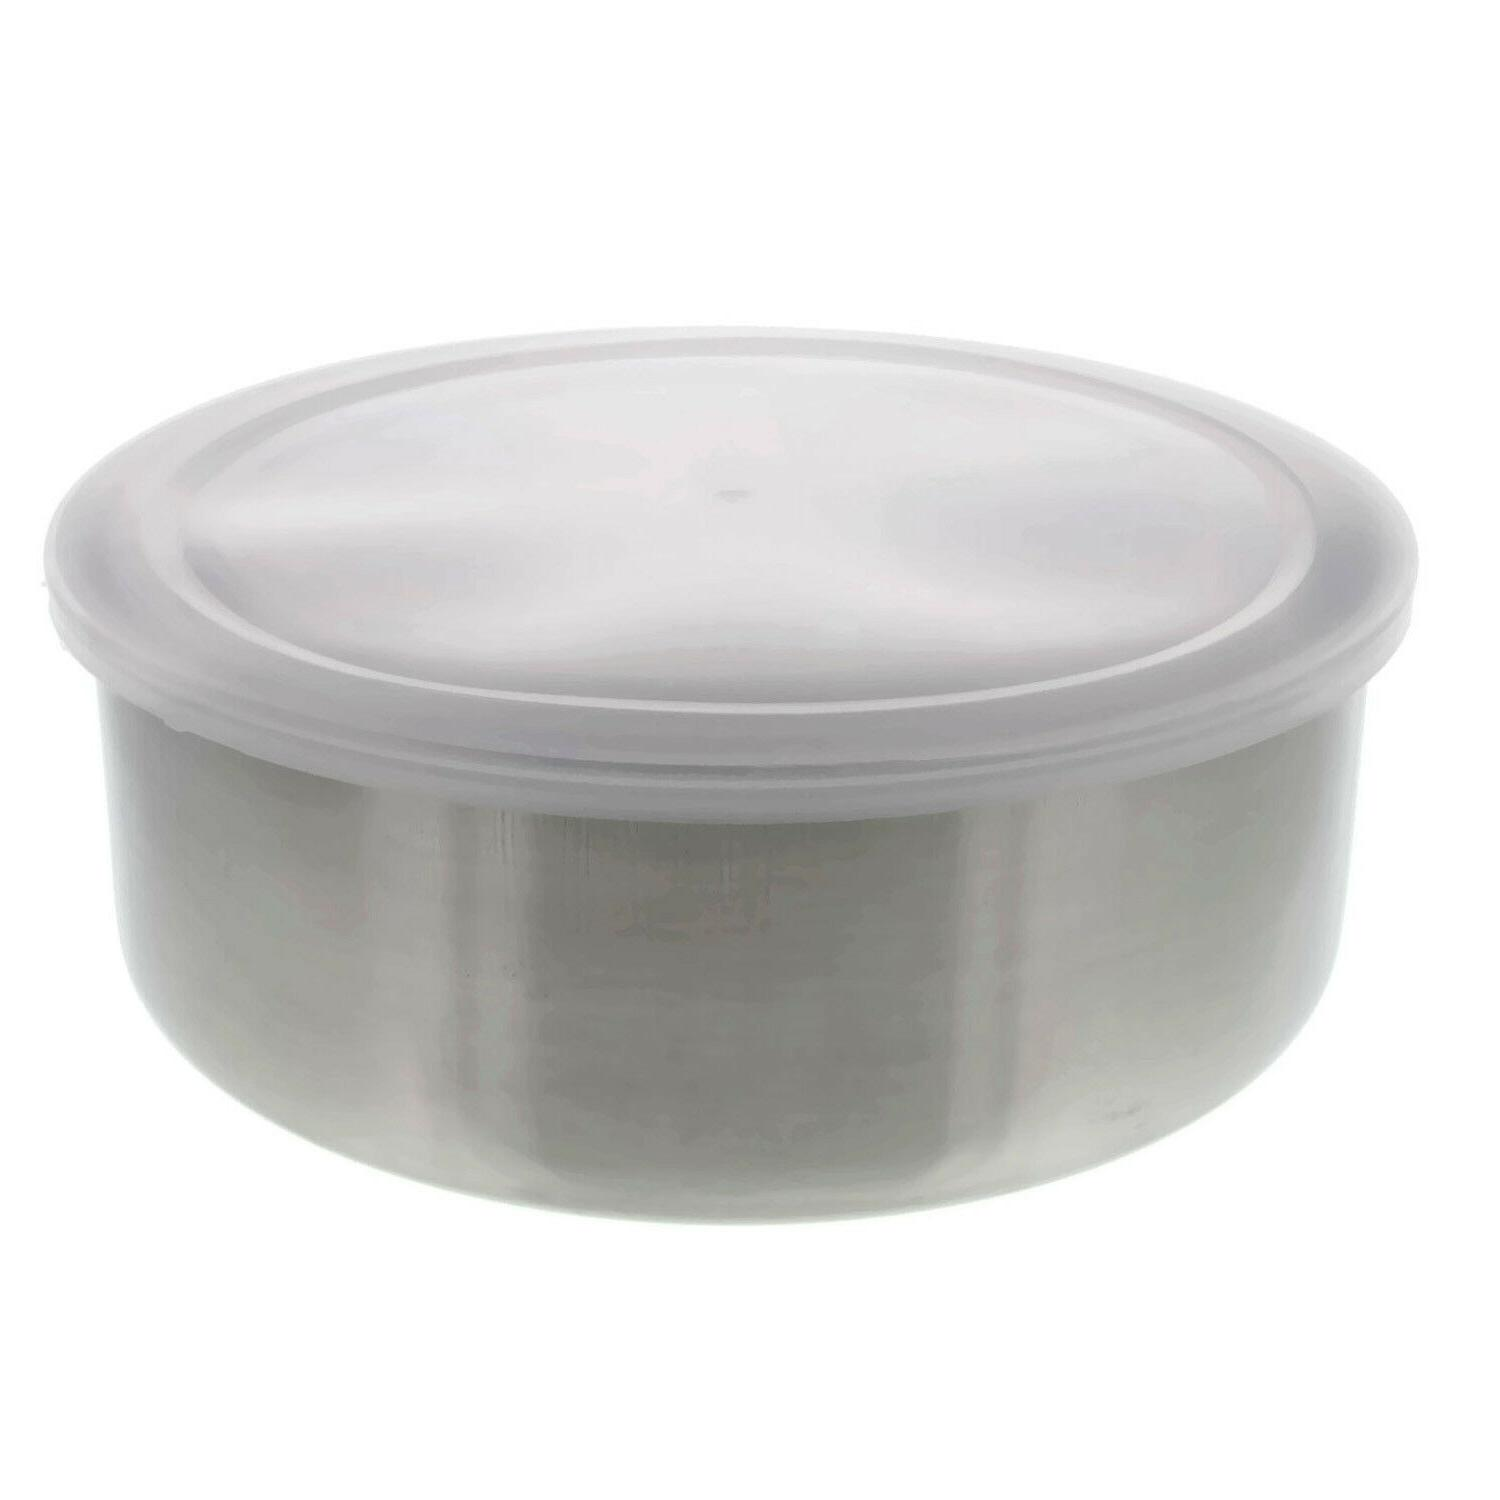 Set Stainless Steel Containers w/